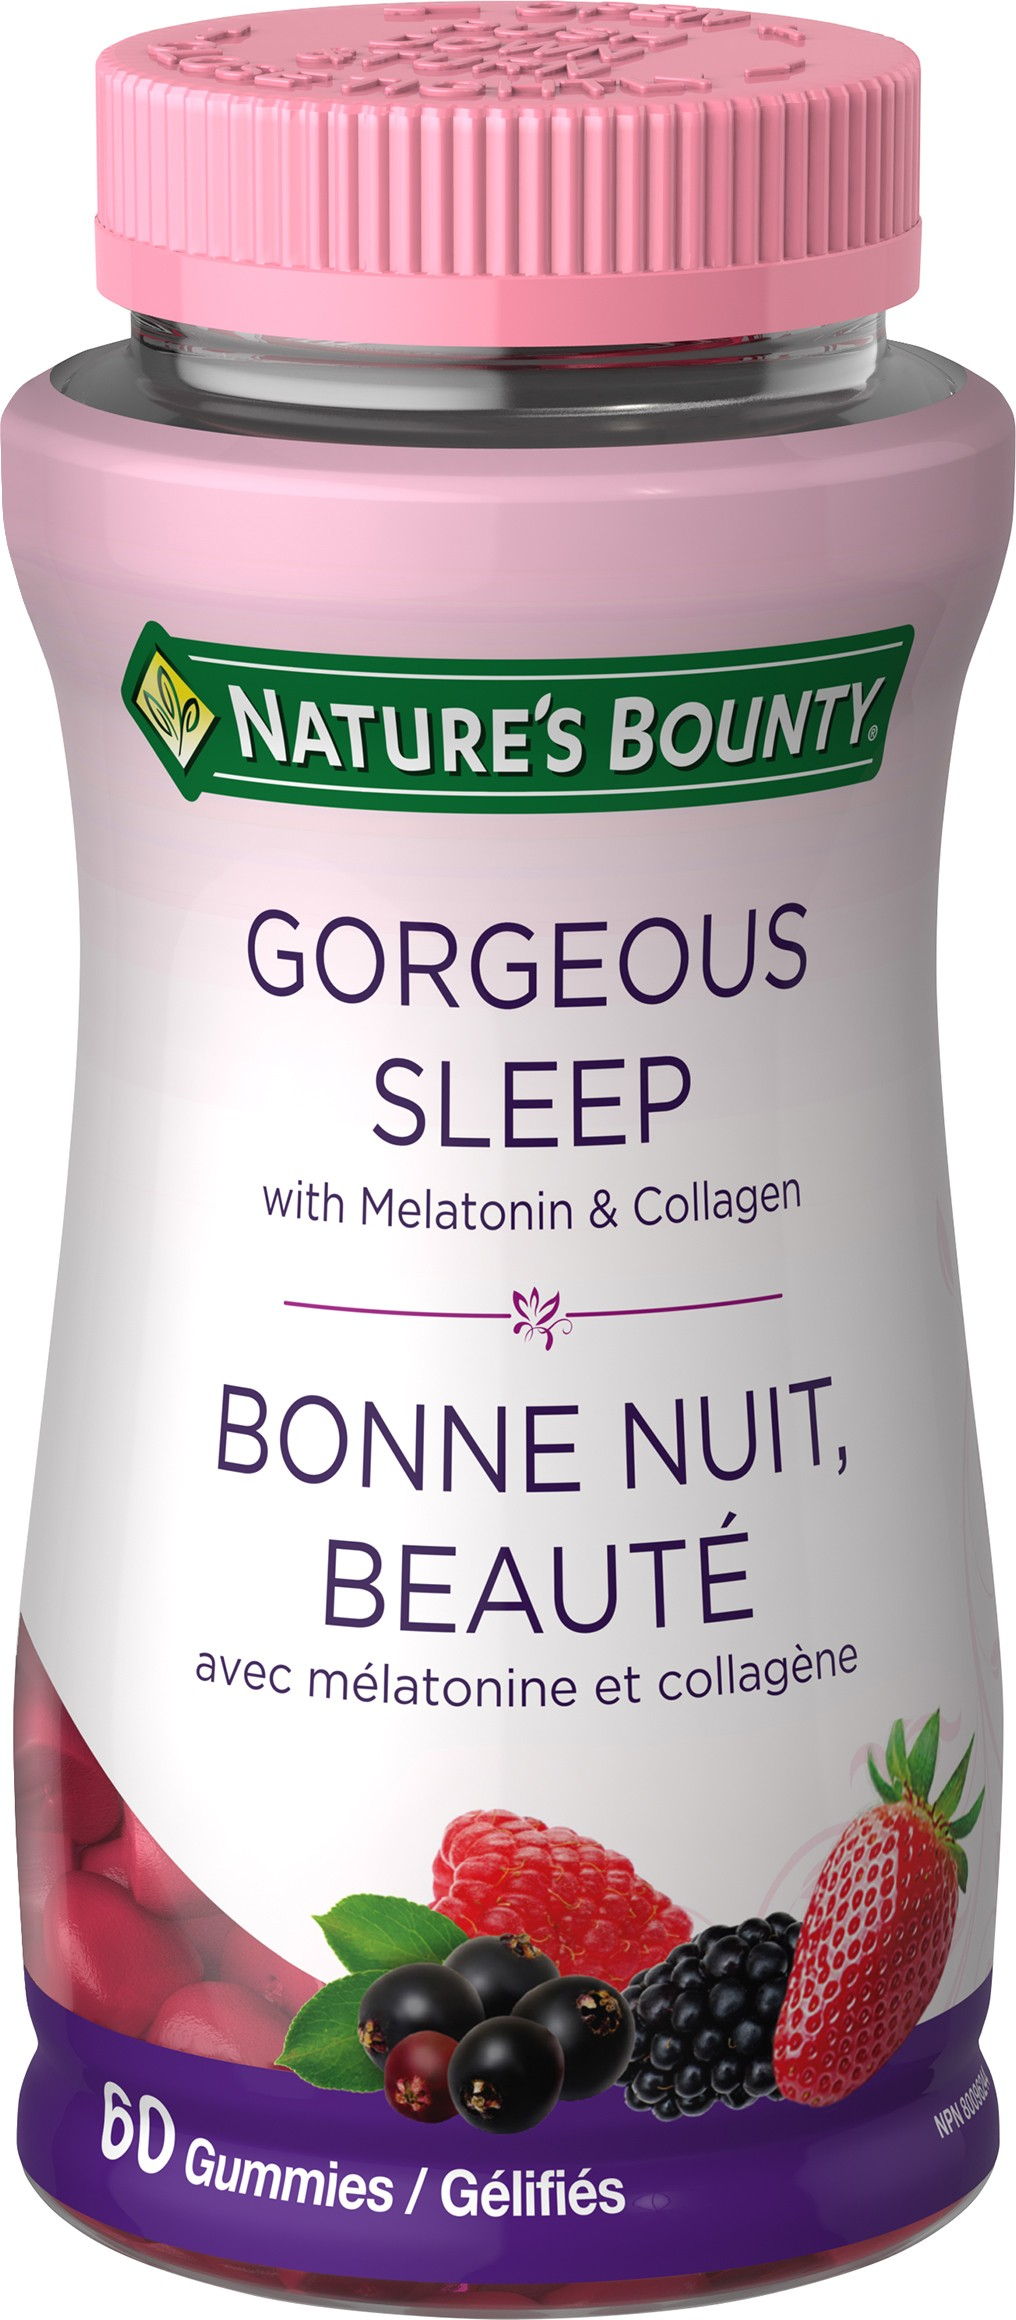 Gorgeous Sleep with Melatonin & Collagen